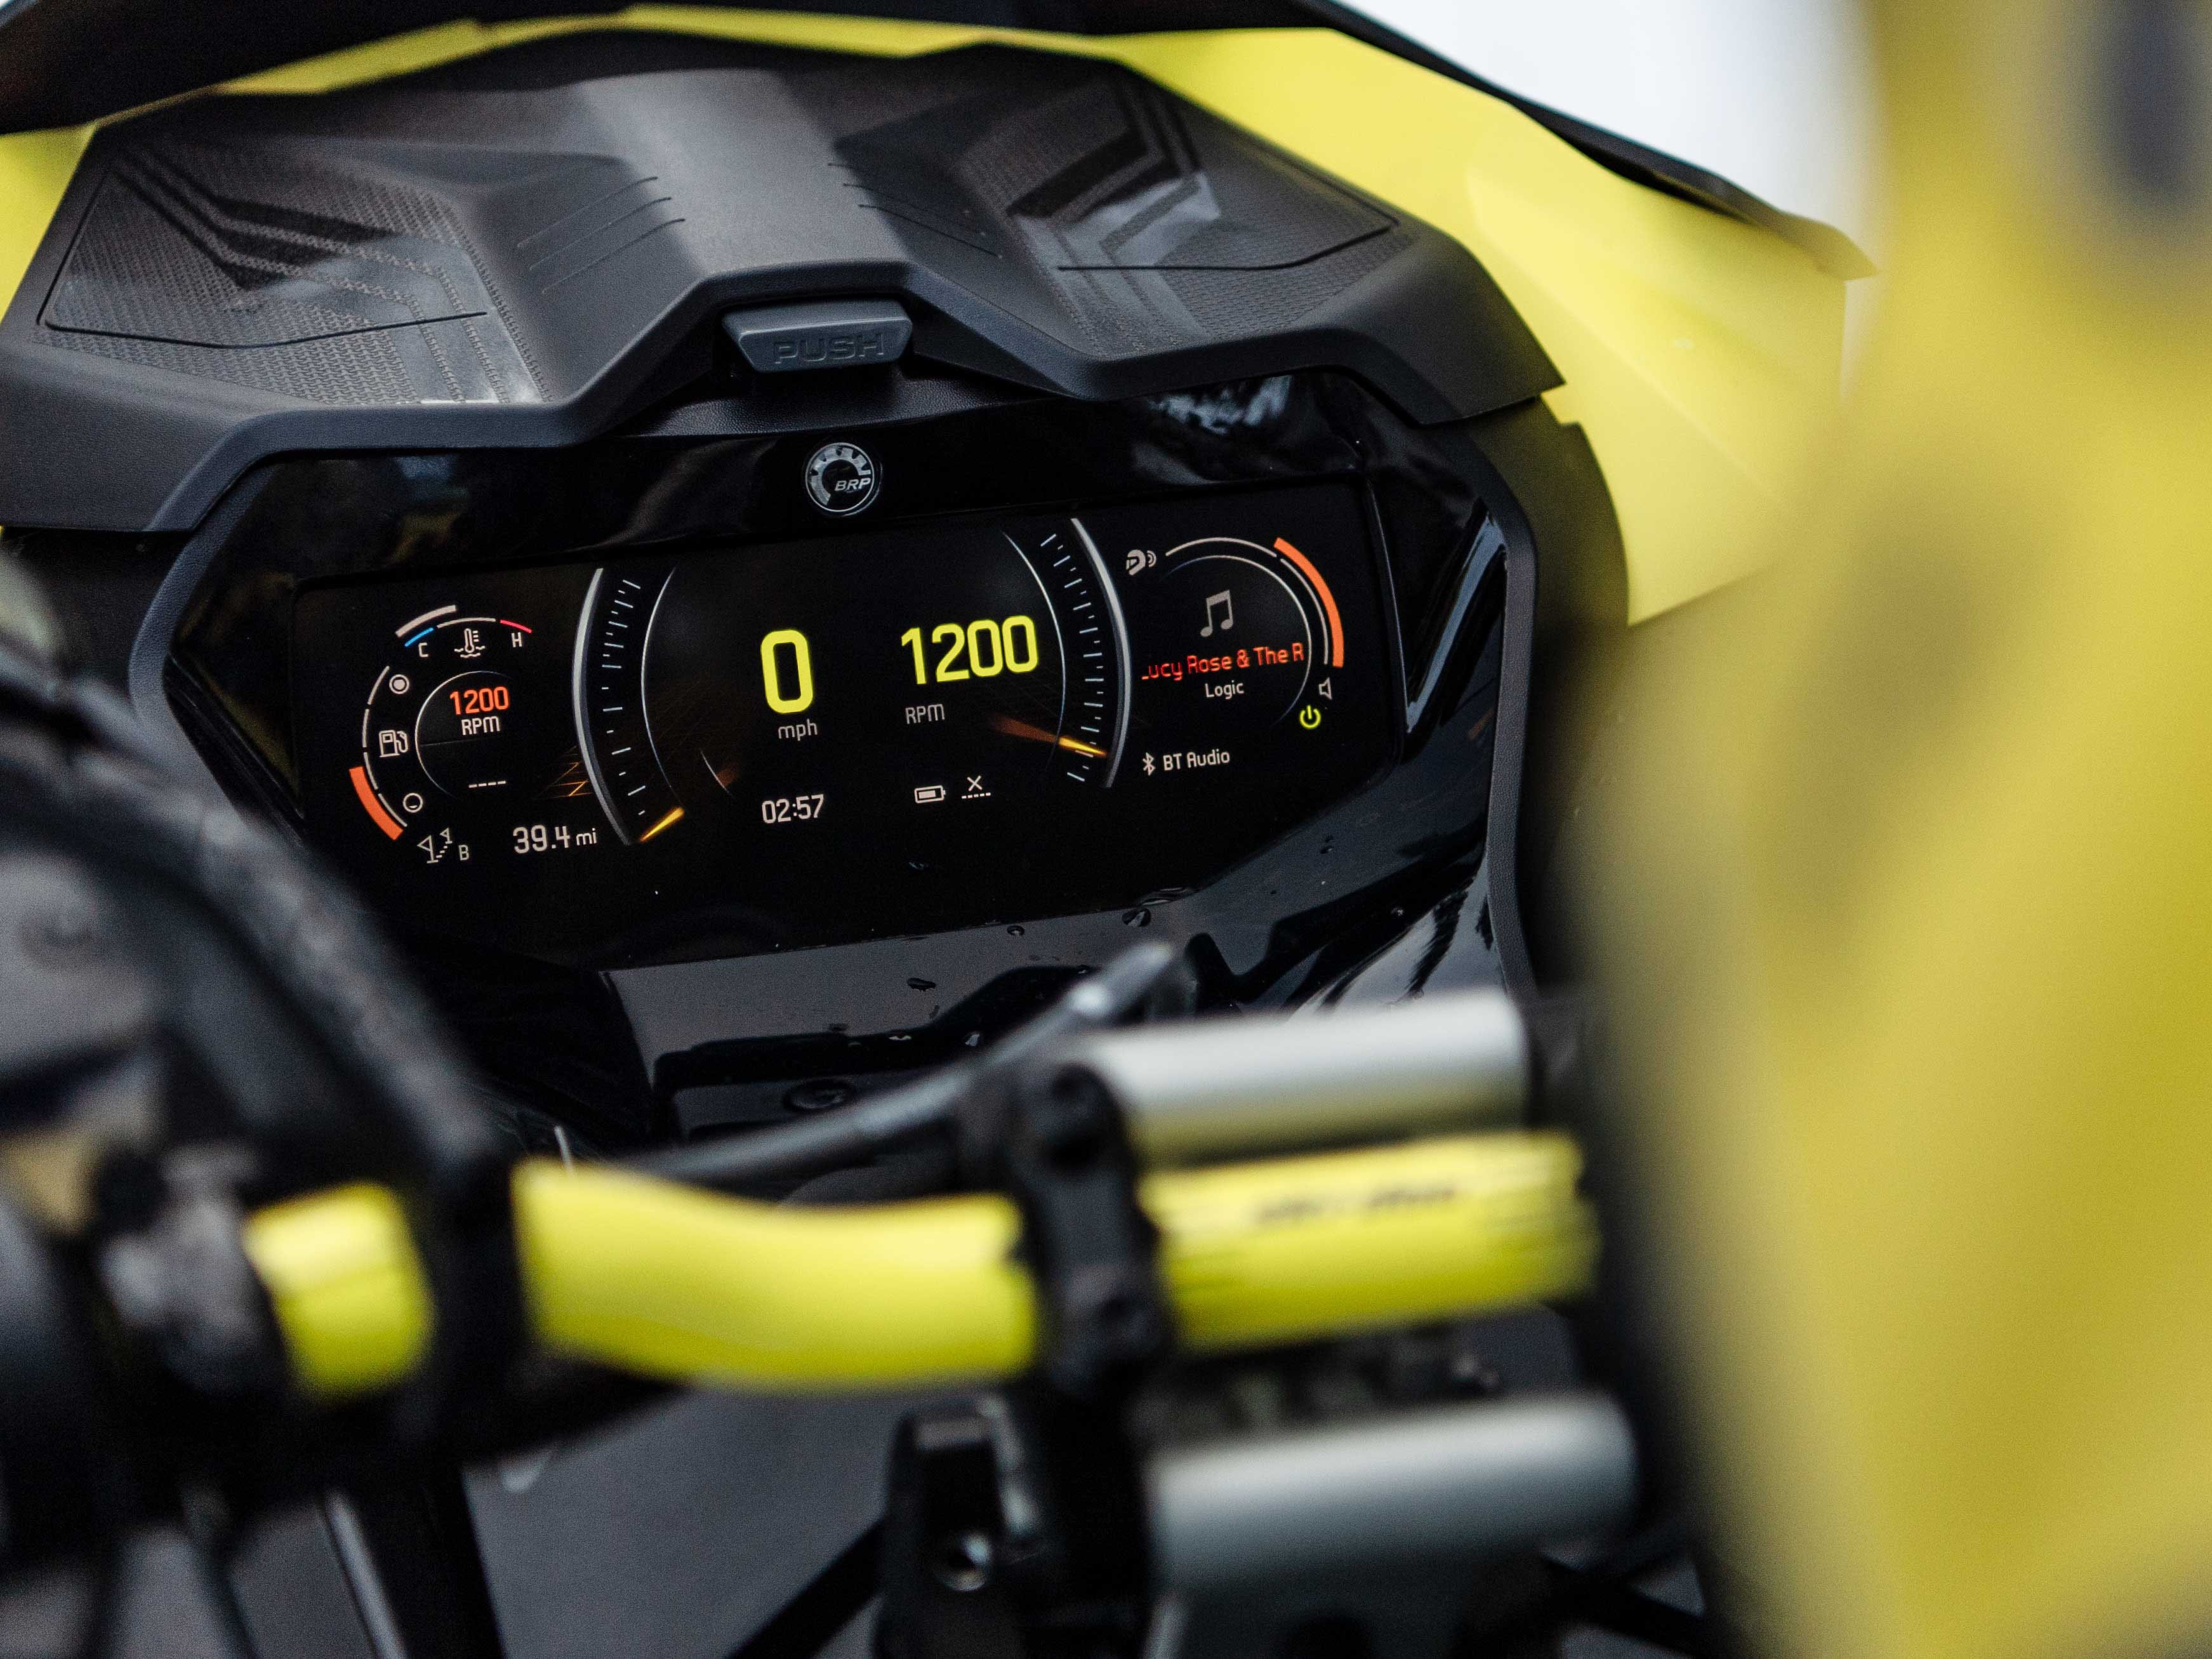 2022 New Ski-Doo Gauge